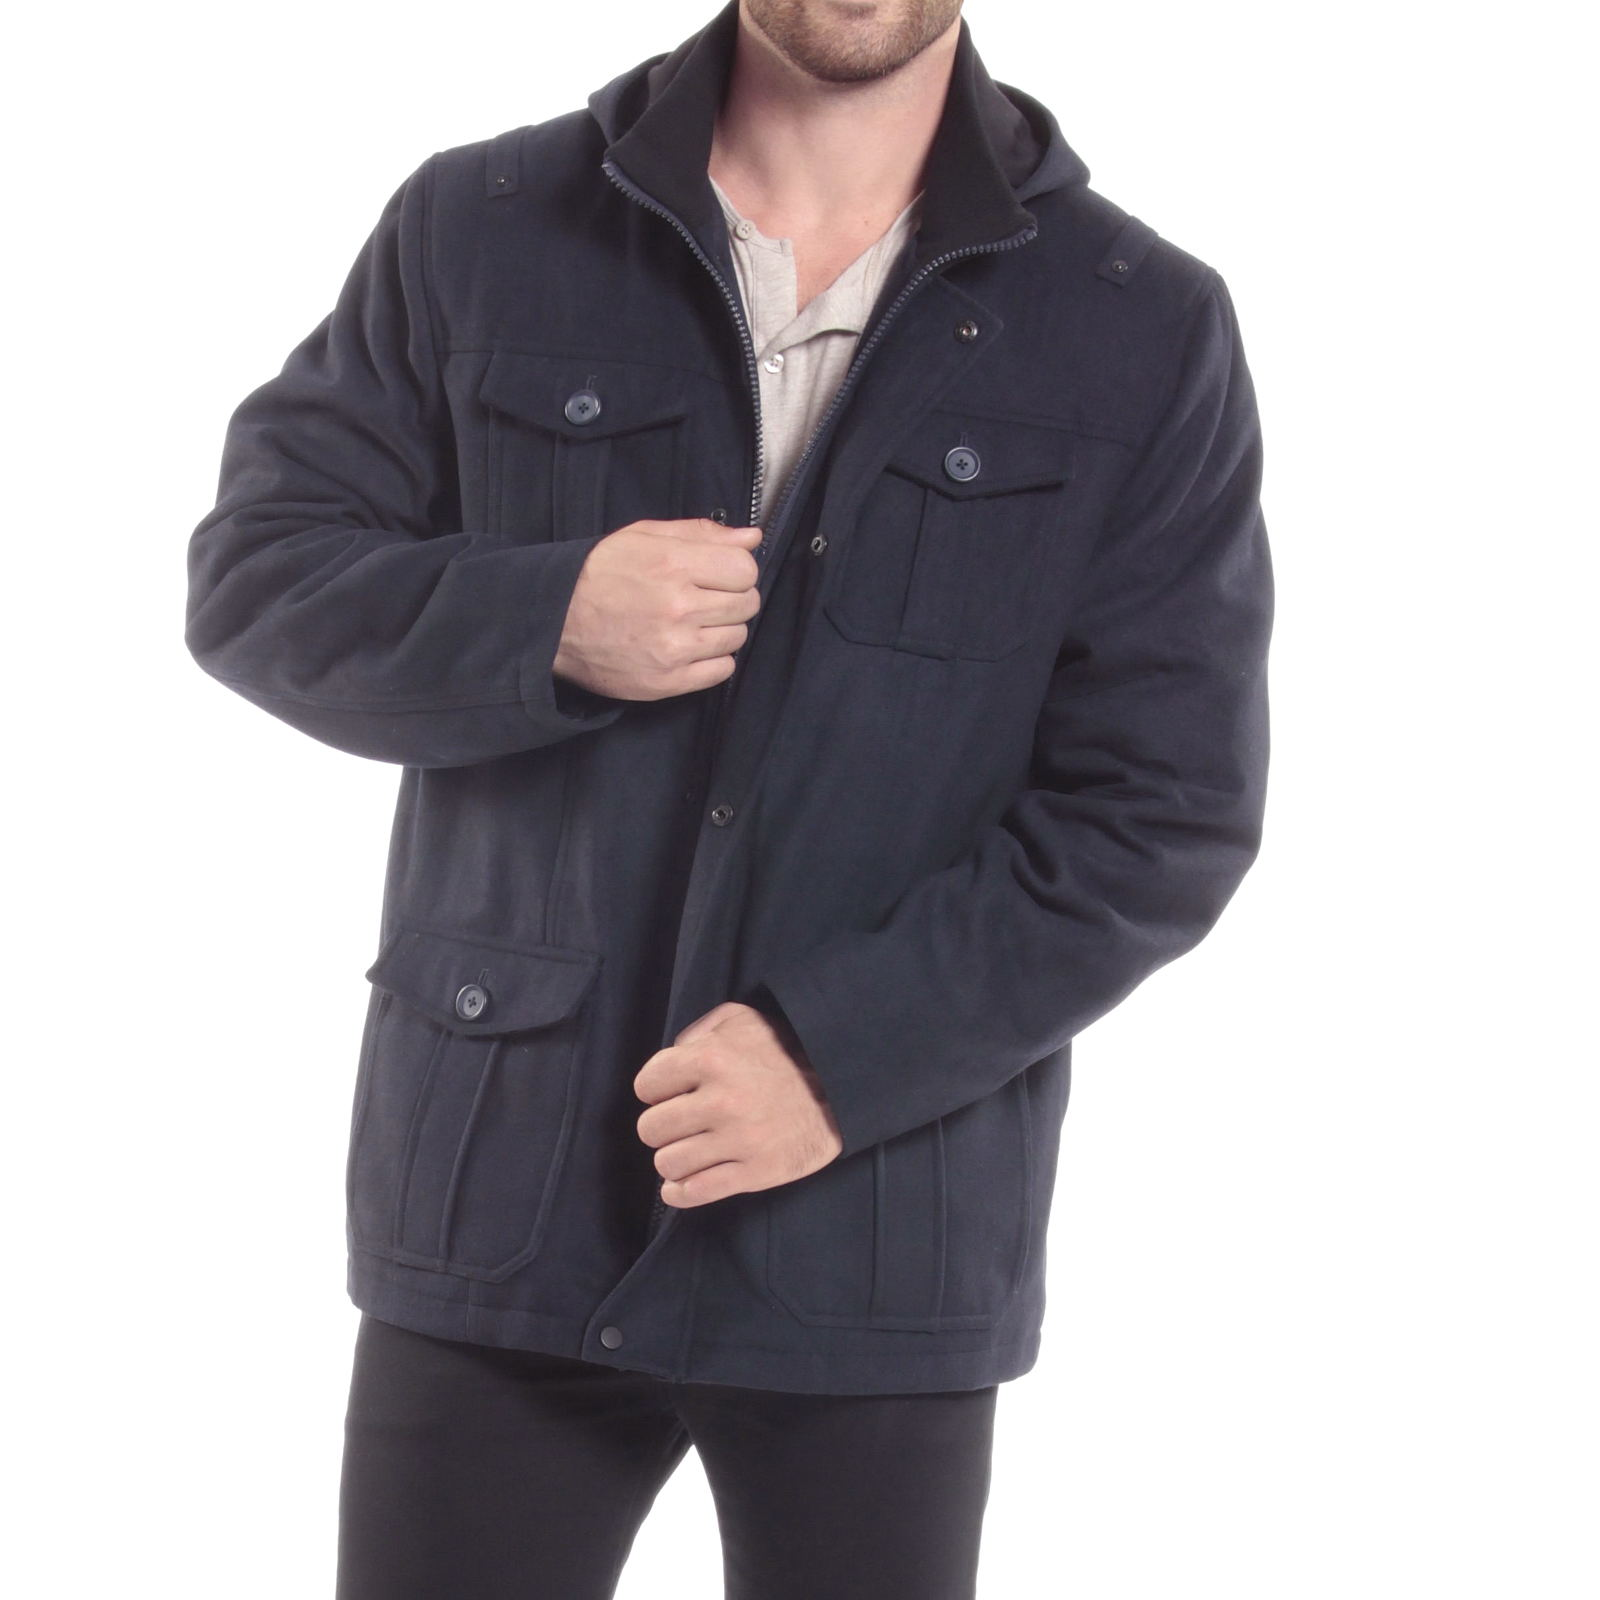 Alpine-Swiss-Noah-Mens-Wool-Coat-Parka-with-Removable-Hood-Jacket-Cargo-Pockets thumbnail 38